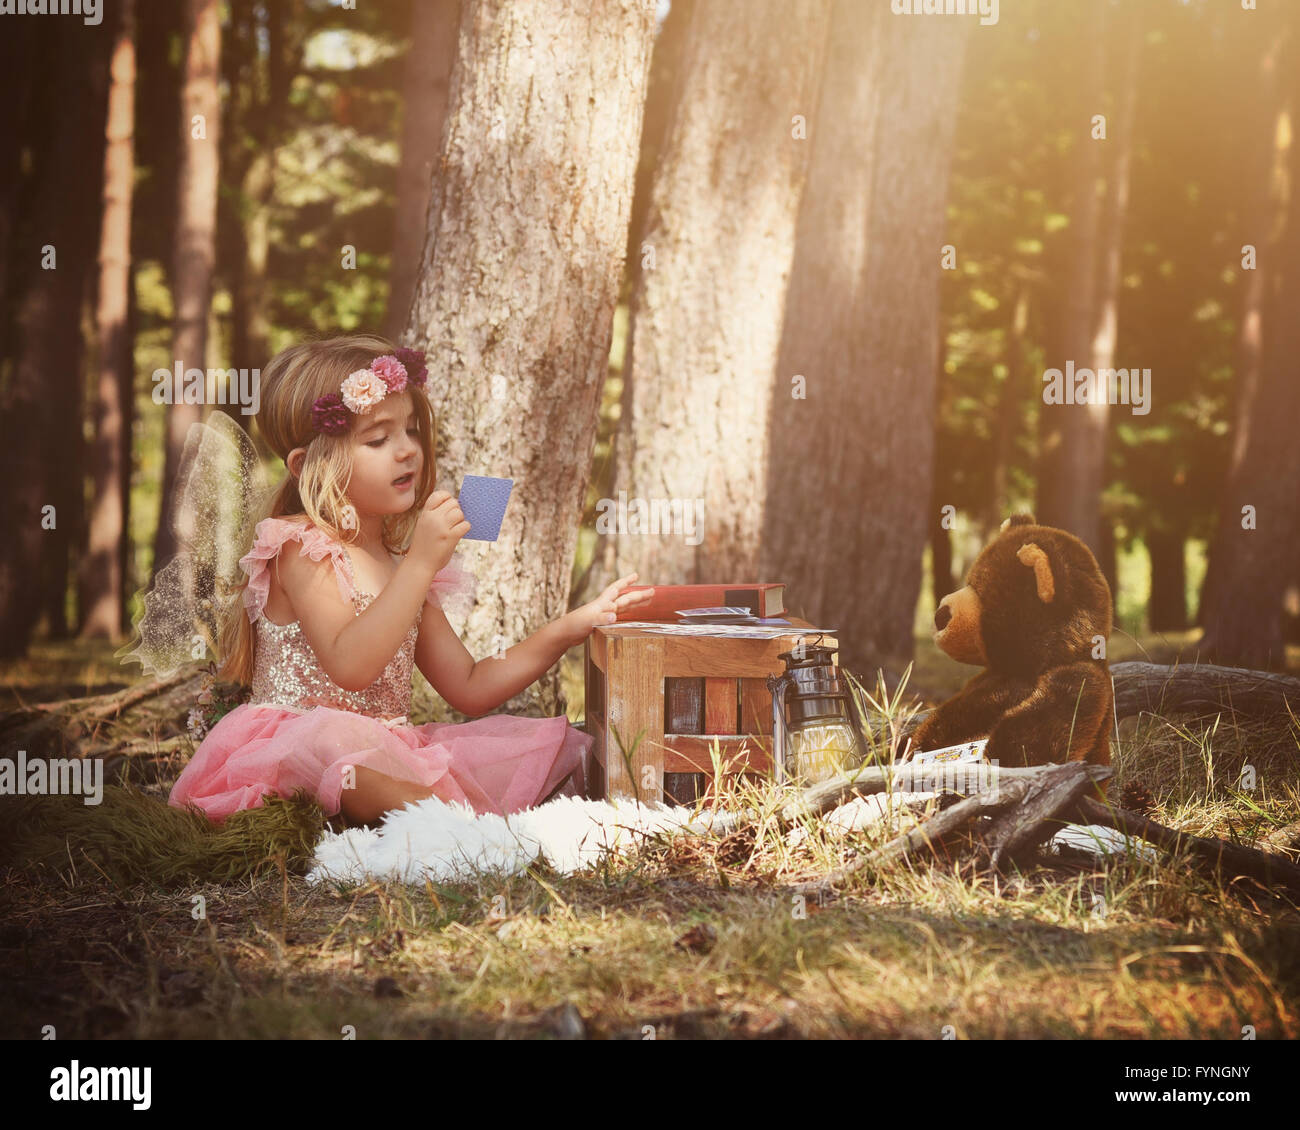 A little fairy girl is sitting in the woods playing a card game with a teddy bear for an imagination or fairy tale - Stock Image